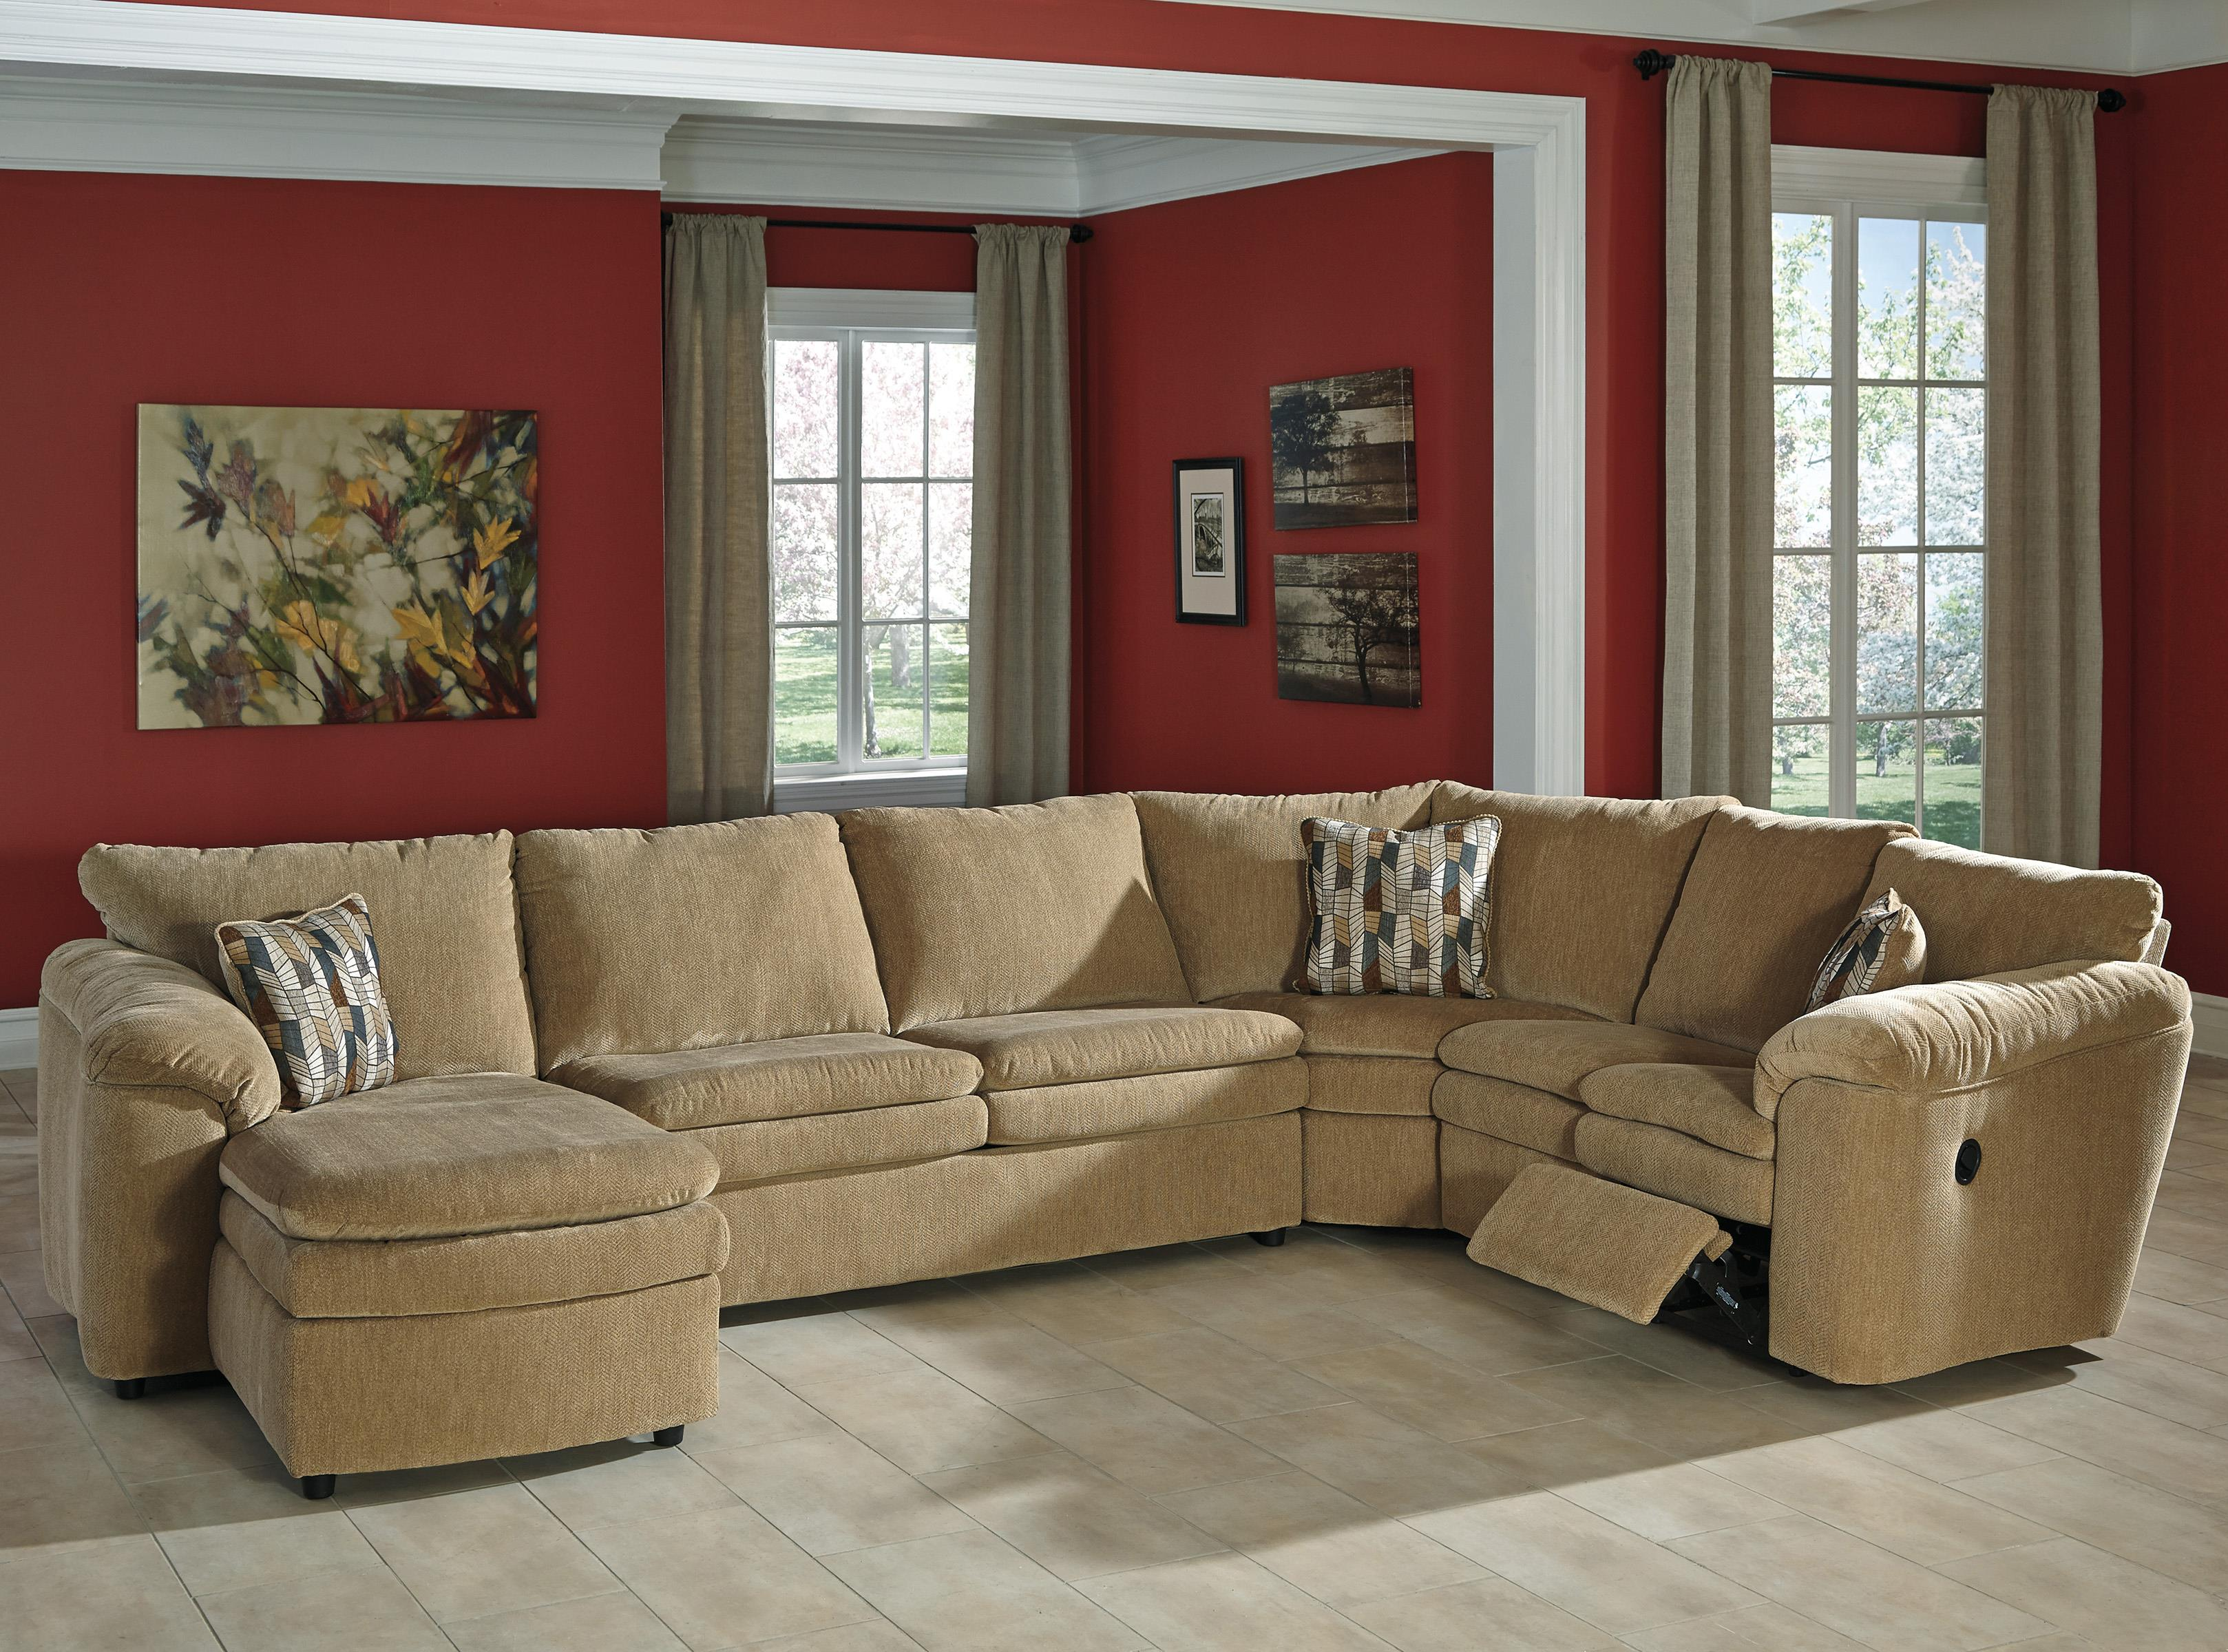 Casual Contemporary 4 Piece Reclining Sectional with Left Chaise